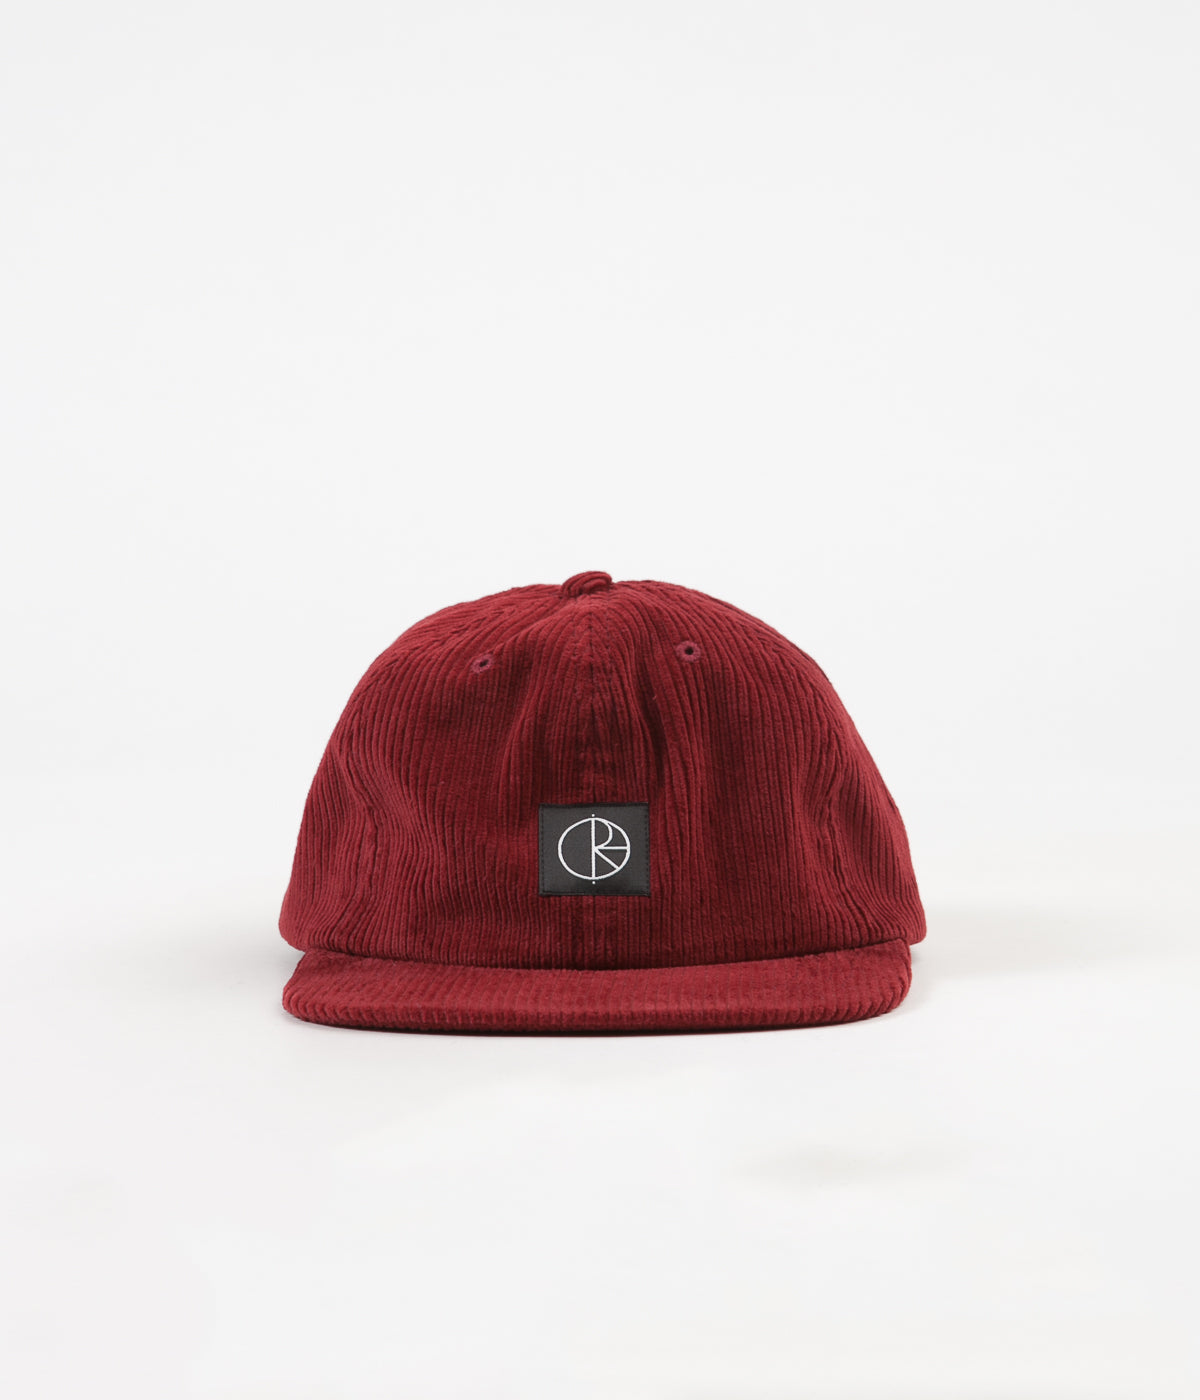 Polar Corduroy Cap - Red